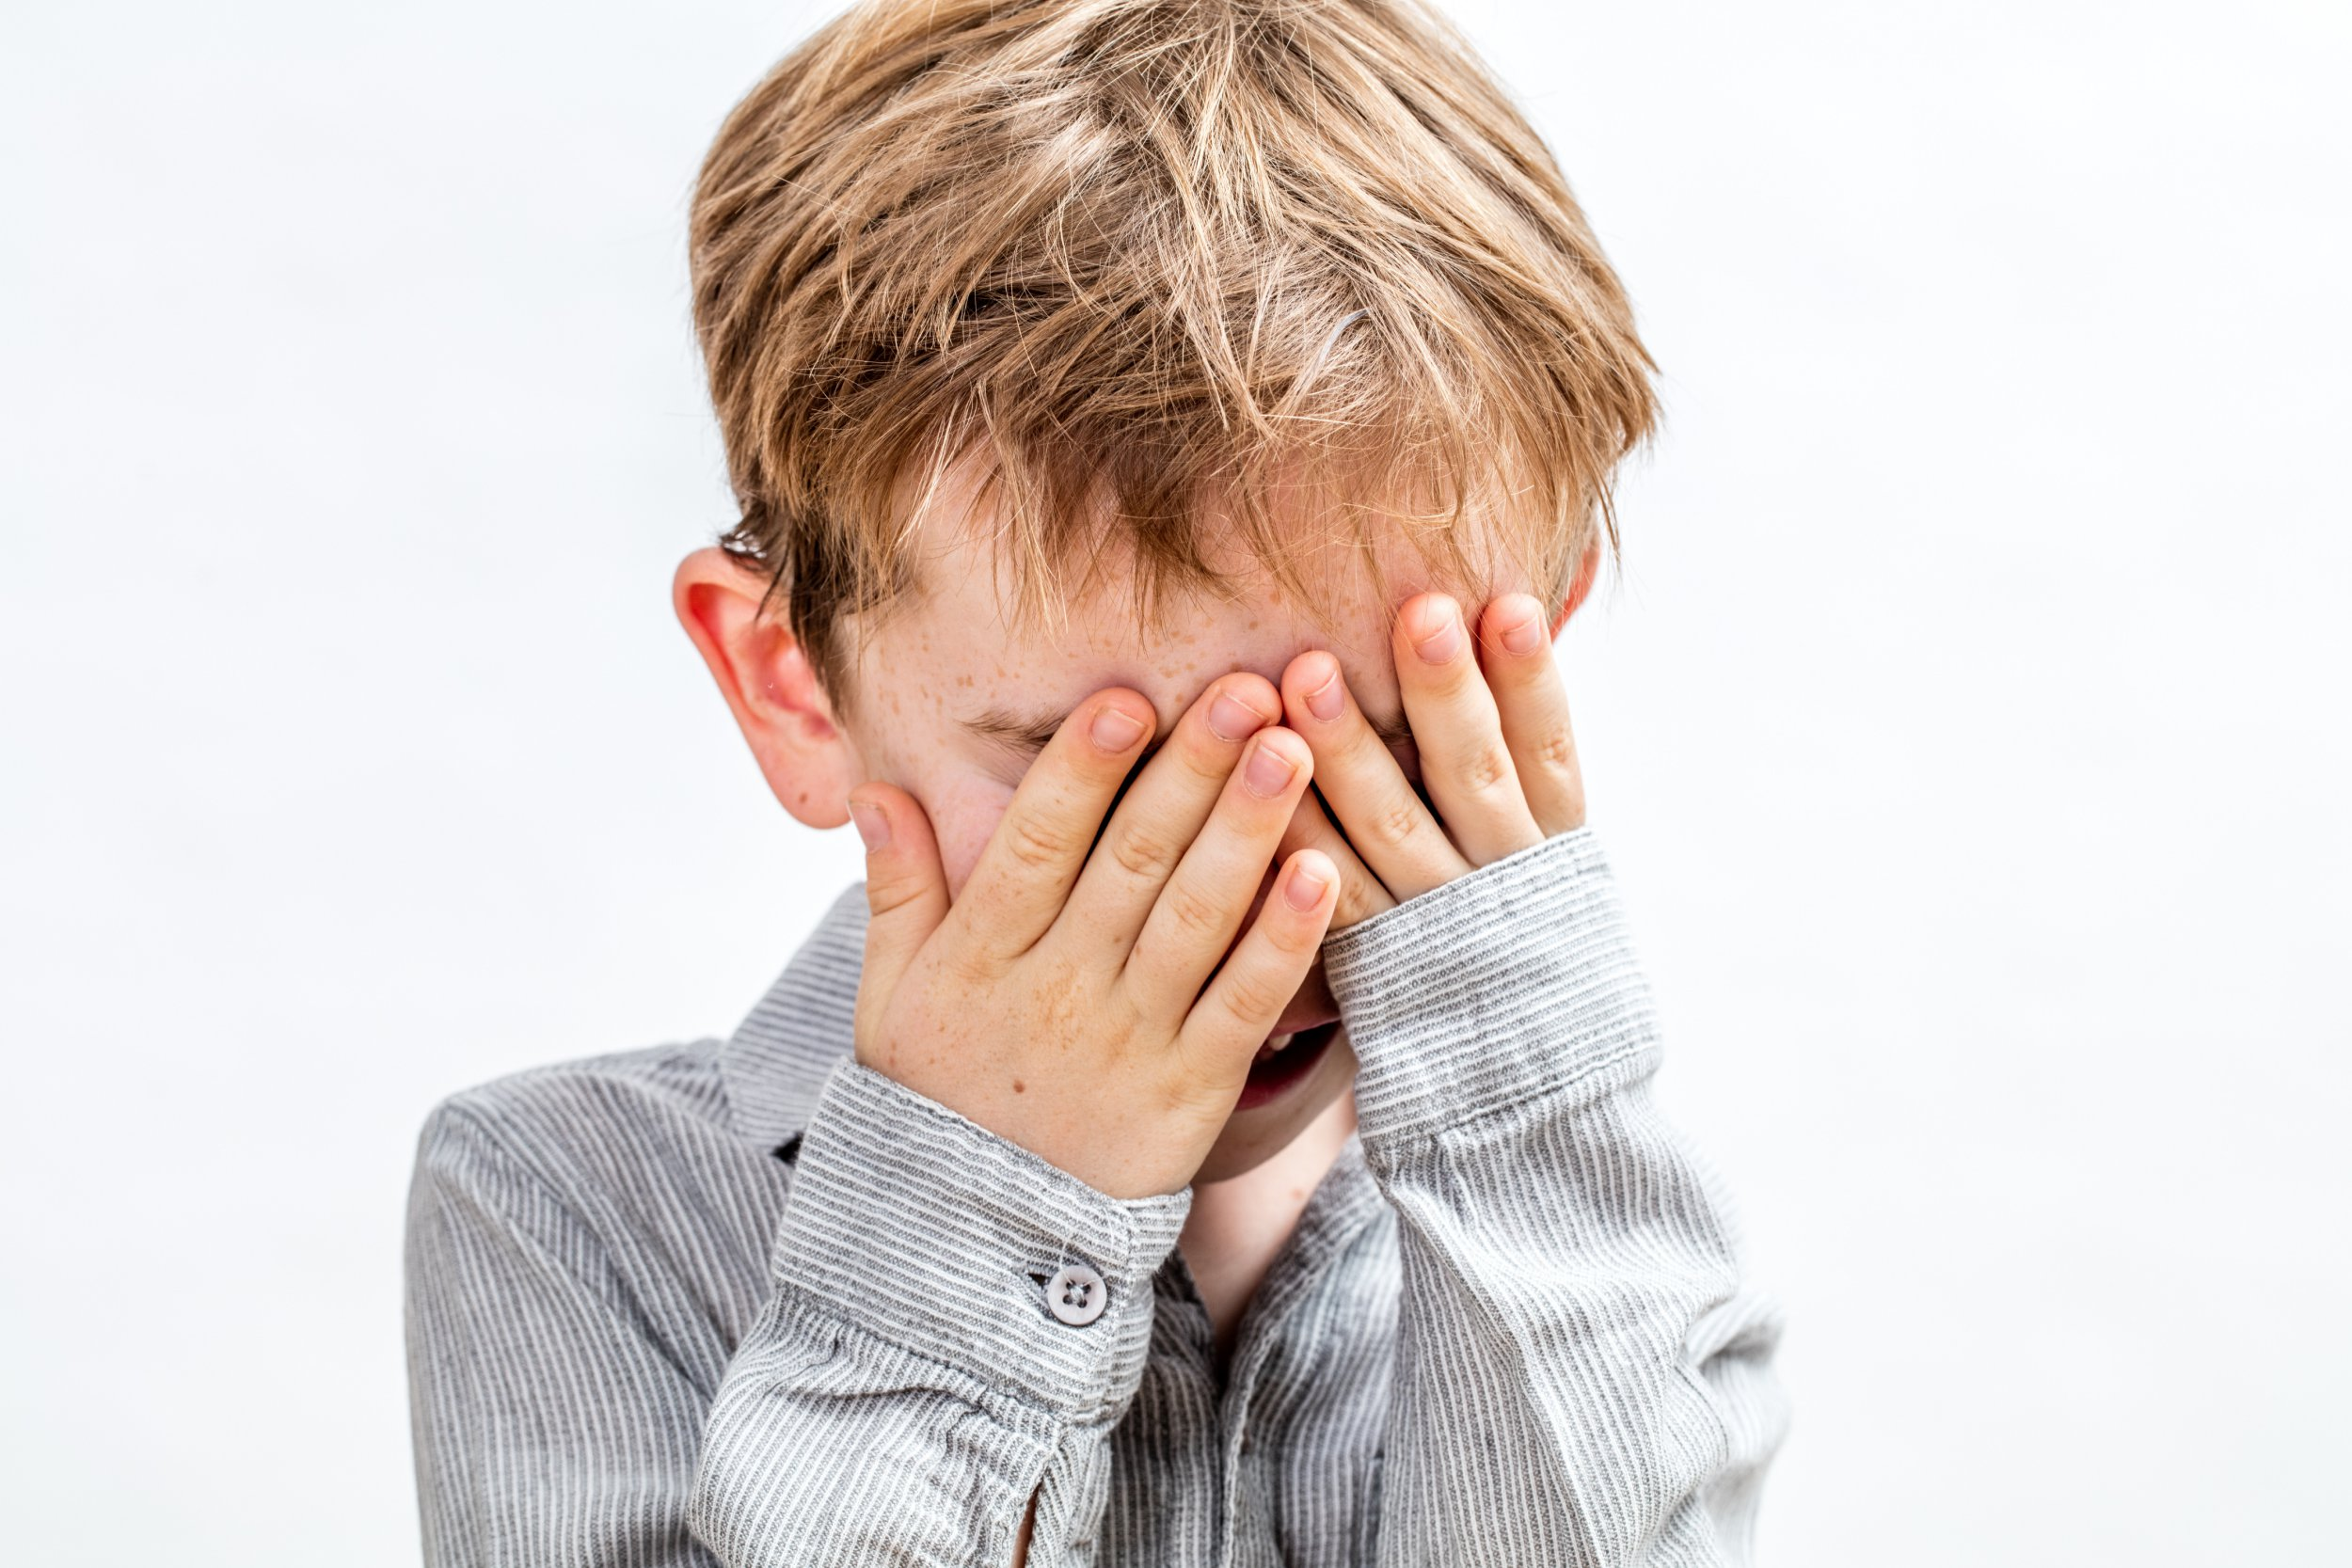 Boy was so good at hide-and-seek police had to help find him